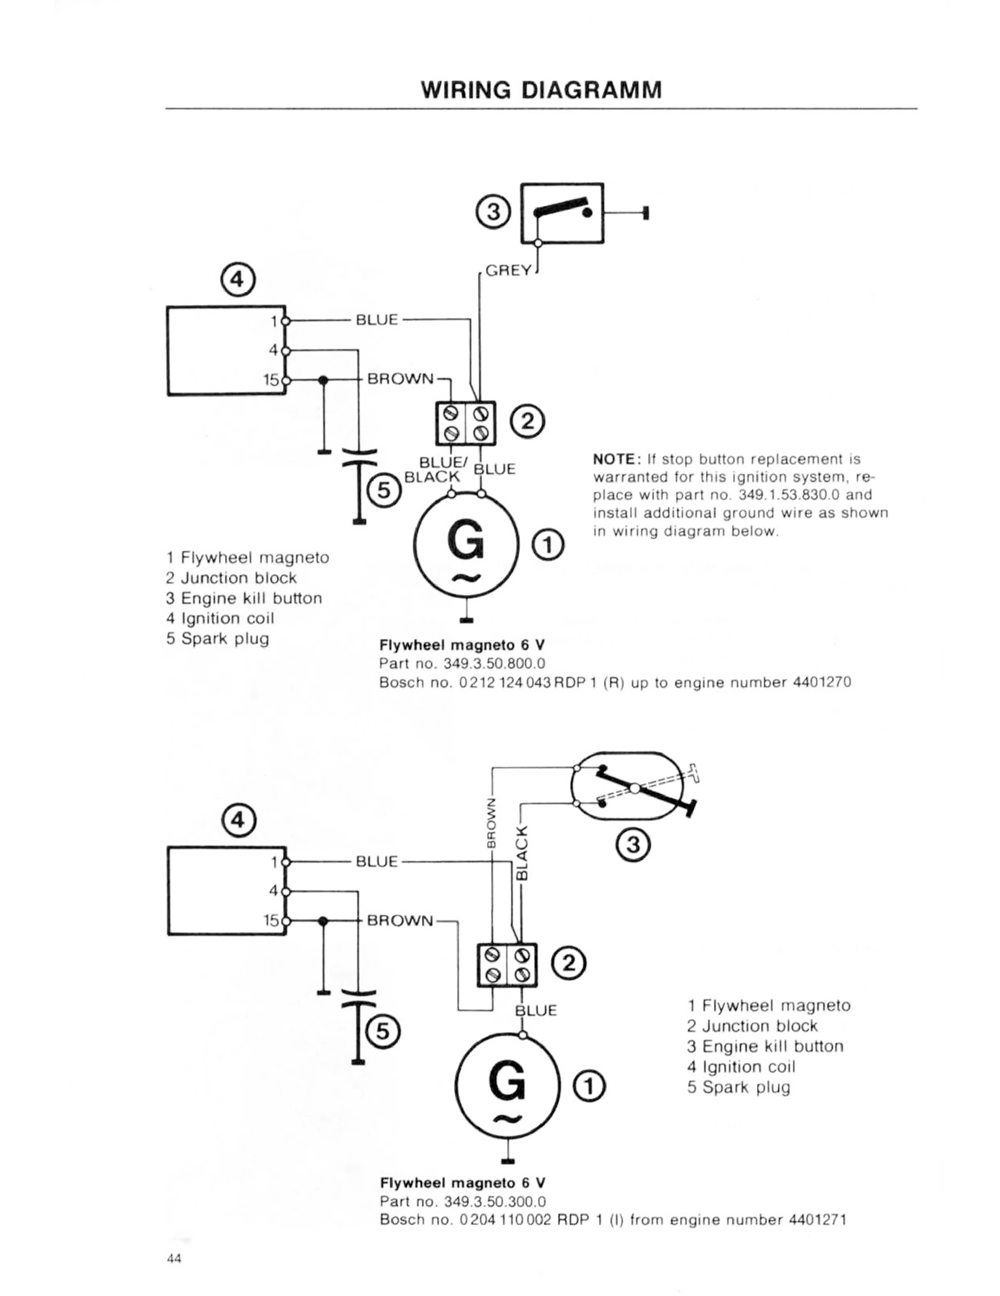 Puch_Magnum_X_wiring_diagram puch wiring diagrams moped wiki  at bakdesigns.co